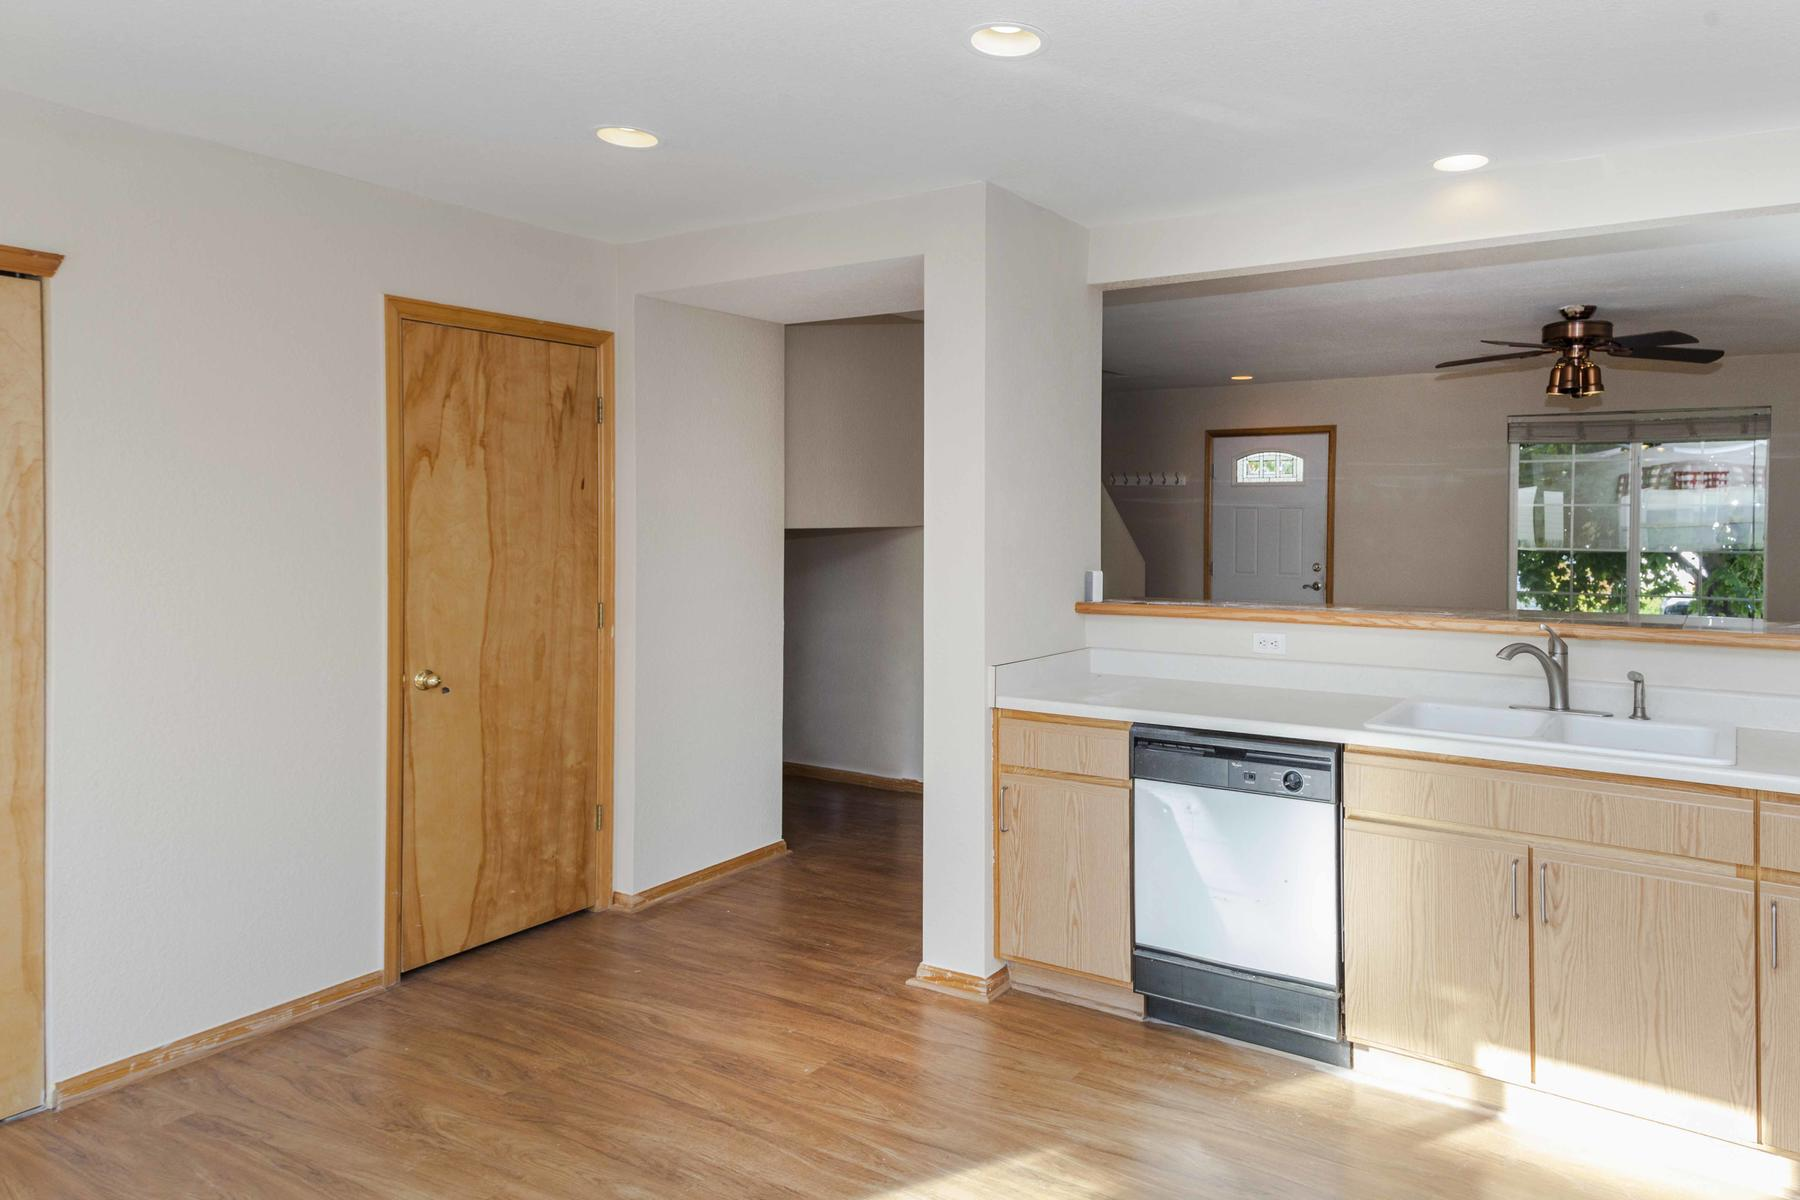 Additional photo for property listing at Perfect First Home Or Investment! 8876 Meade St Westminster, Colorado 80031 United States